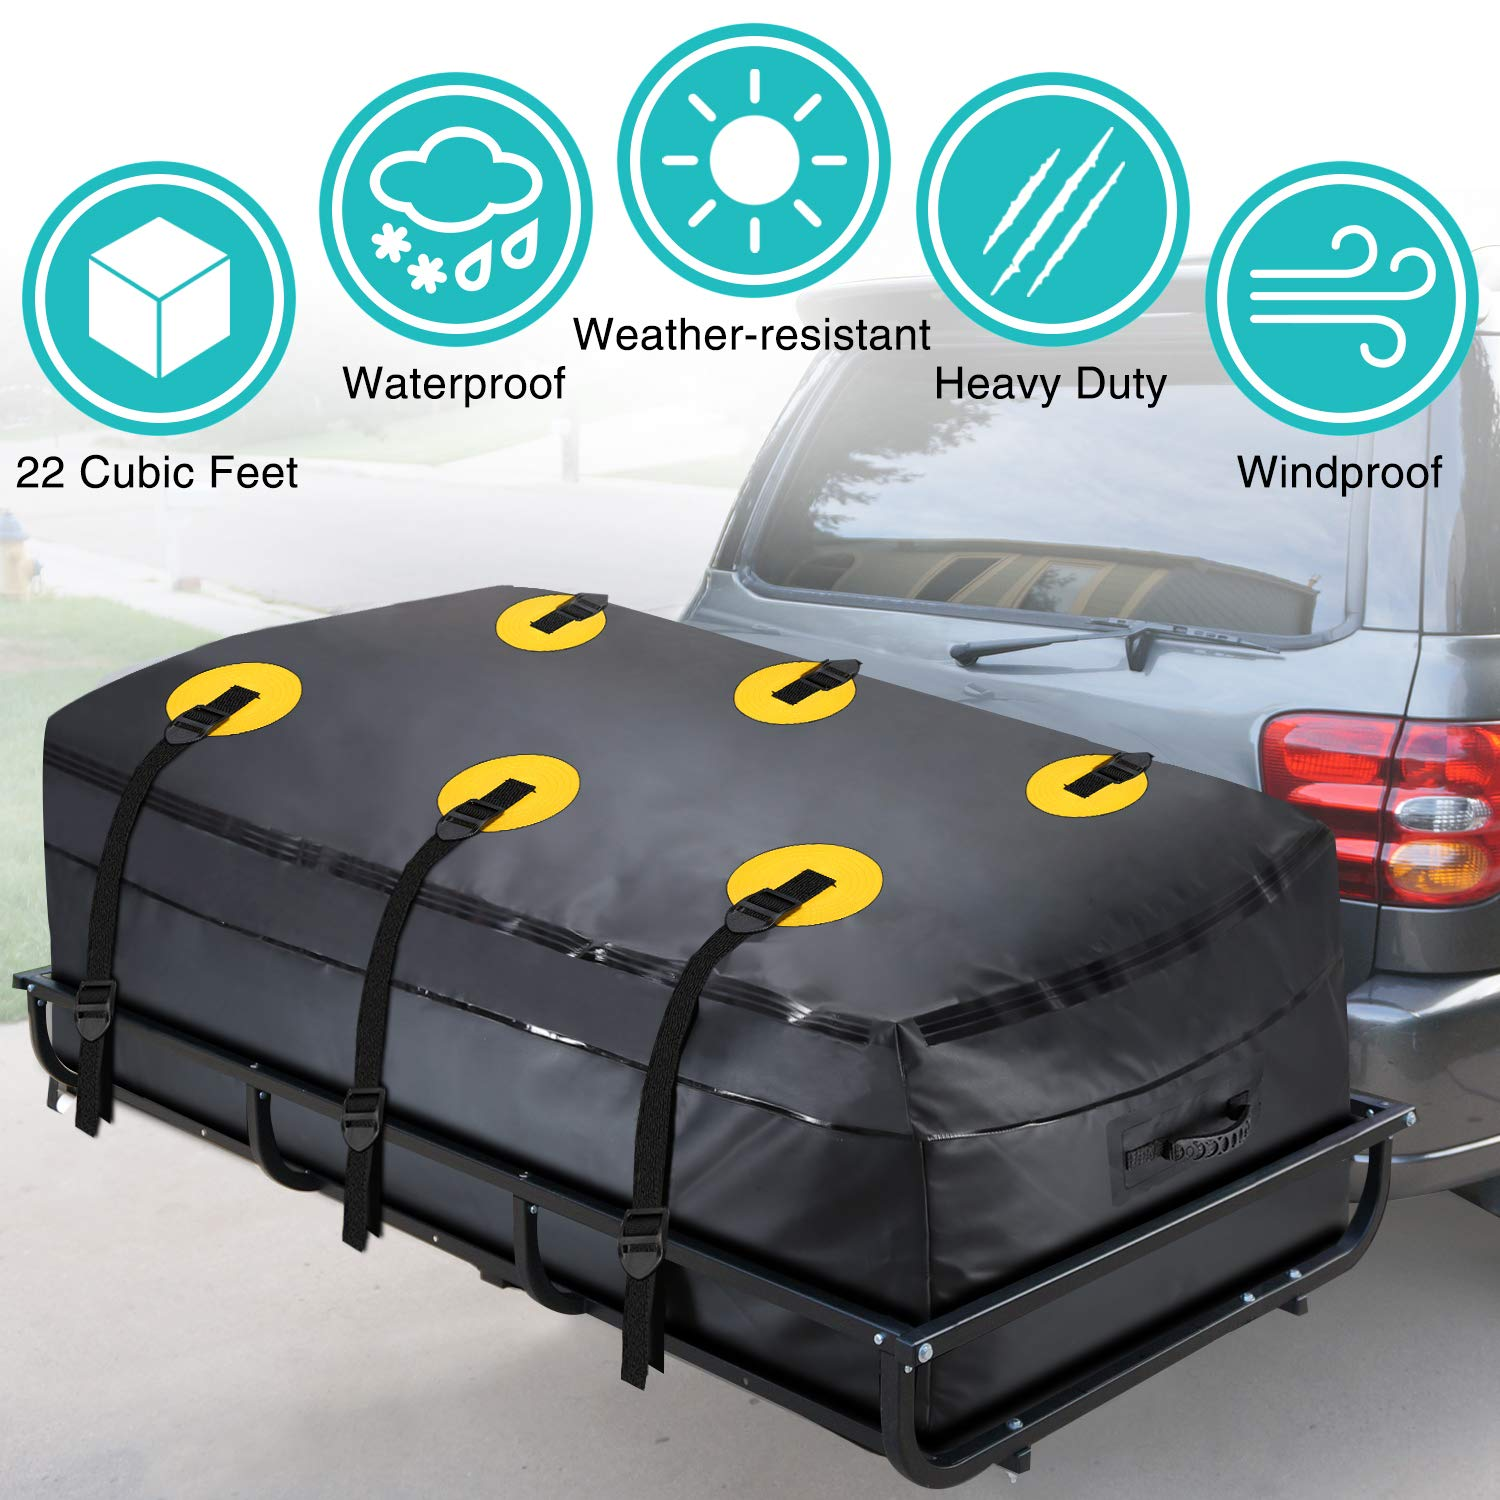 MODOKIT Trailer Hitch Bag-100% Waterproof Hitch Tray Cargo Carrier Bag for Vehicle Car Truck SUV Vans, Heavy Duty Cargo Bags for Hitch Racks-22 Cubic Feet (60''x24''x26'')